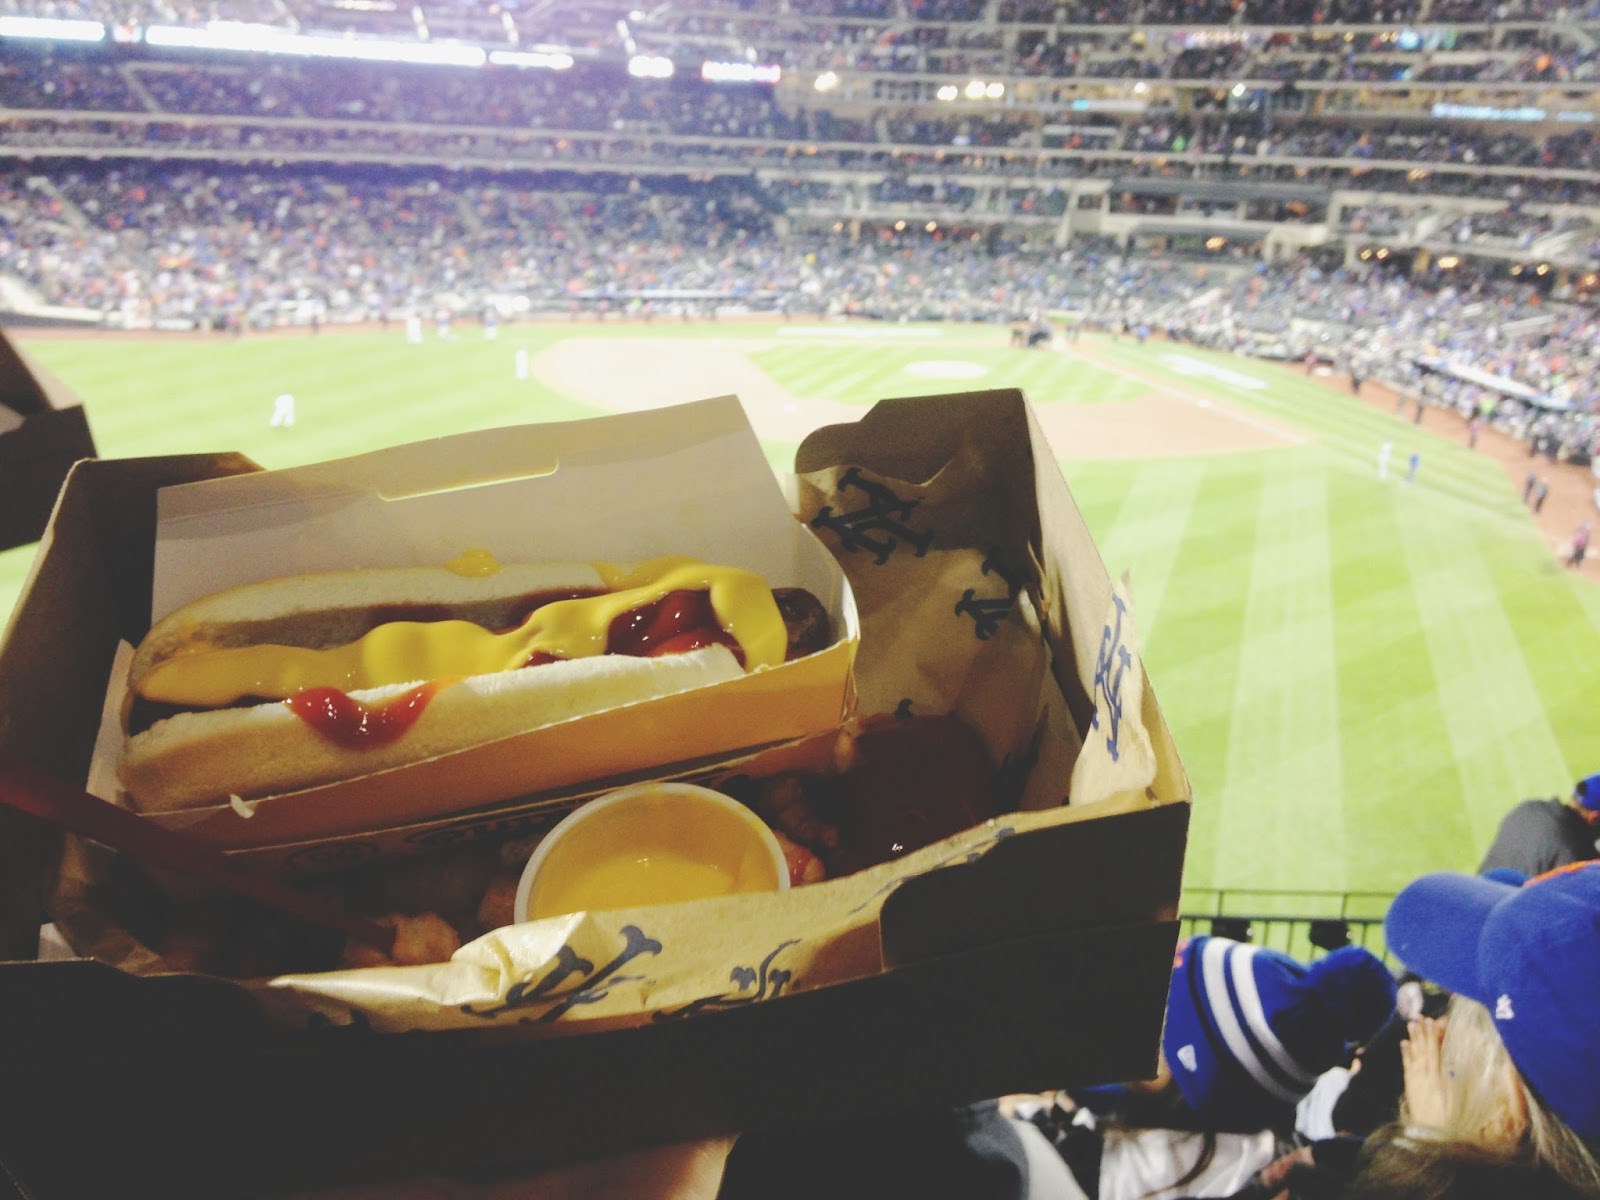 nyc travel mets world series food hot dog 16